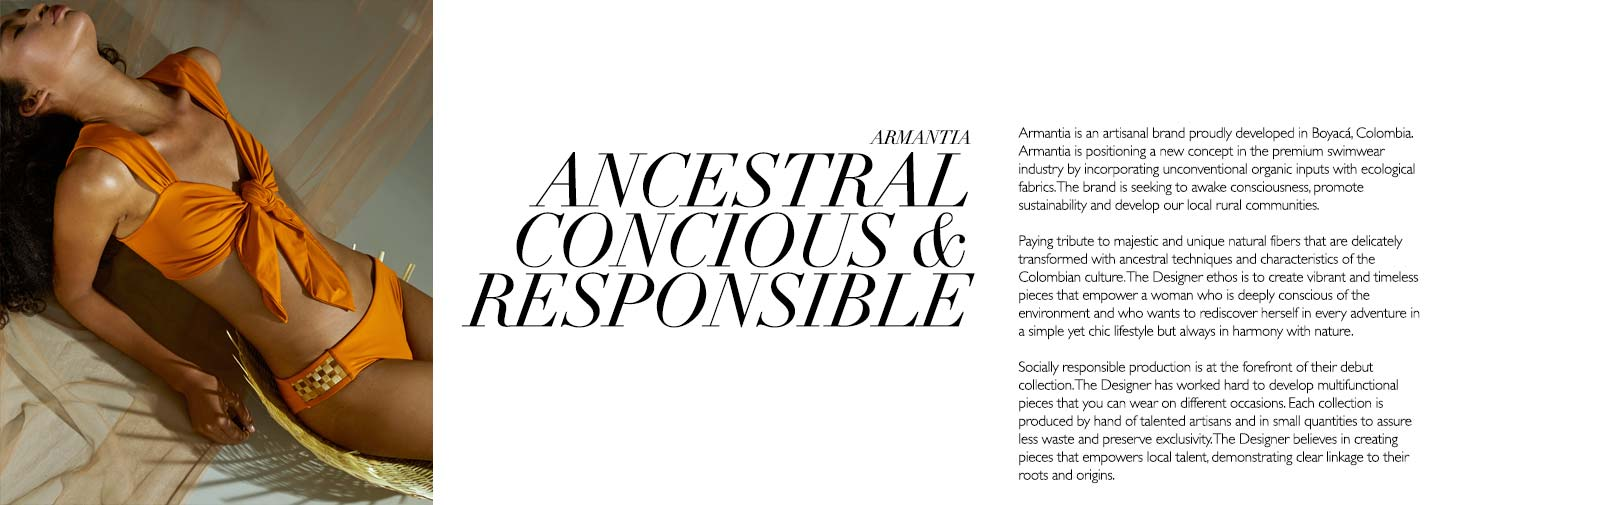 ARMANTIA - ANCESTRAL CONCIOUS & RESPONSIBLE - Armantia is an artisanal brand proudly developed in Boyacá, Colombia. We are positioning a new concept in the premium swimwear industry by incorporating unconventional organic inputs with ecological fabrics. Our brand seeks to awake consciousness, promote sustainability and develop our local rural communities.